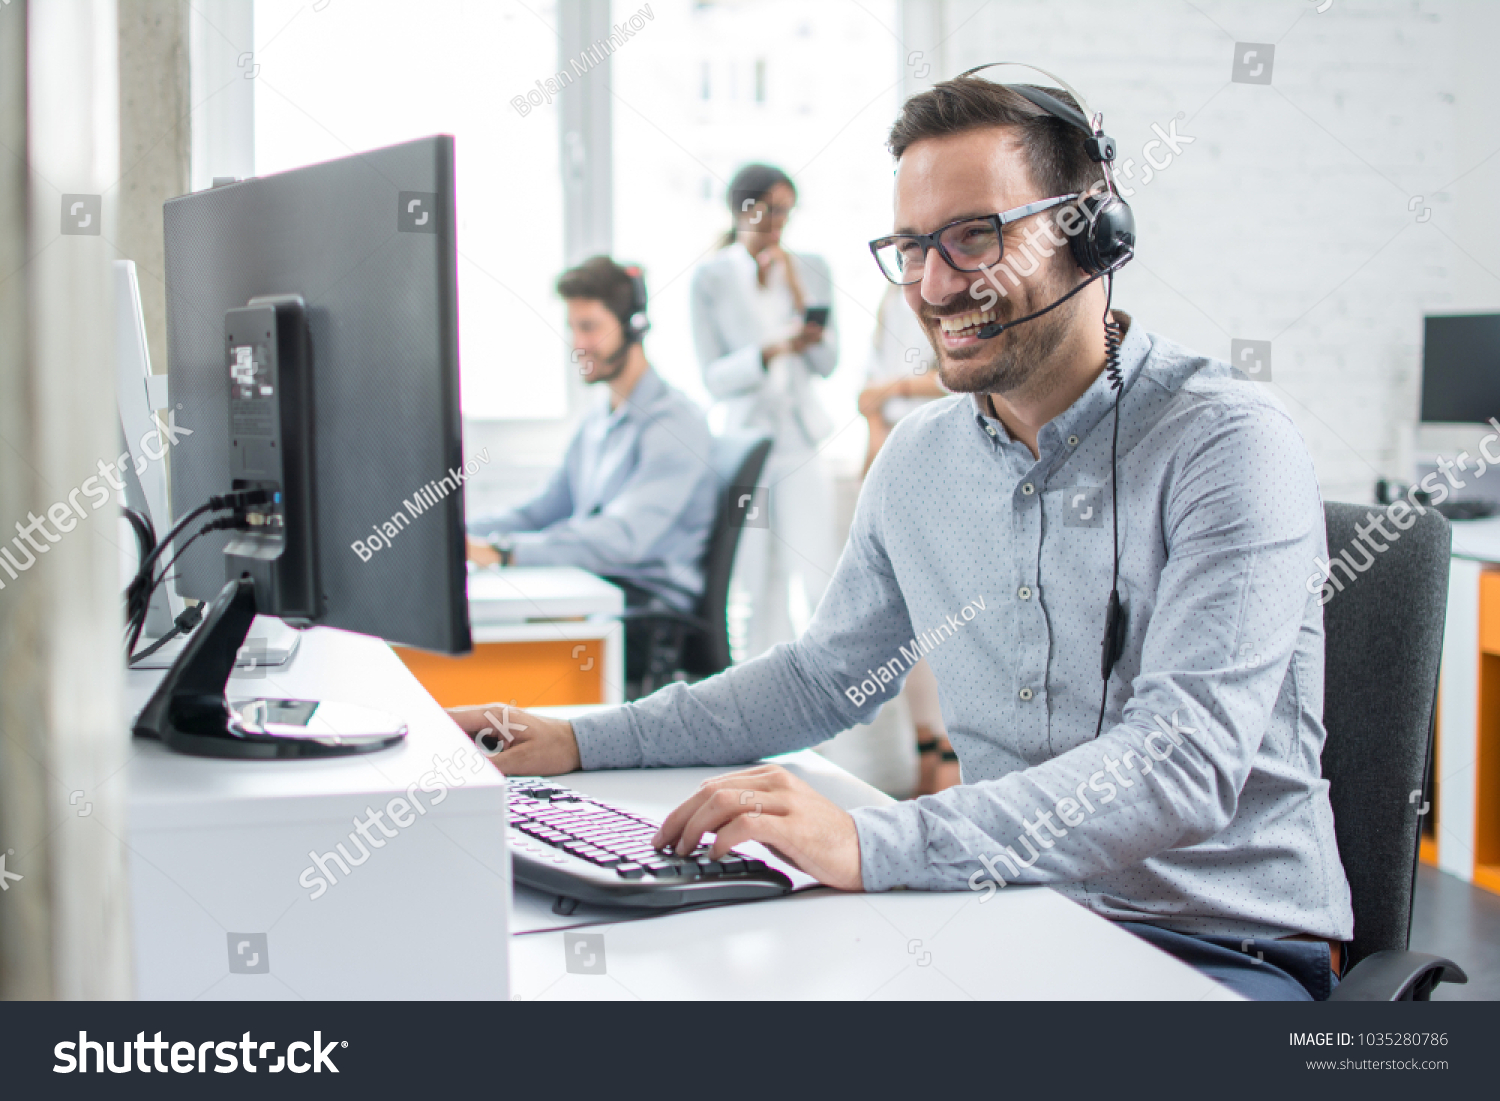 Smiling customer support operator with hands-free headset working in the office. #1035280786